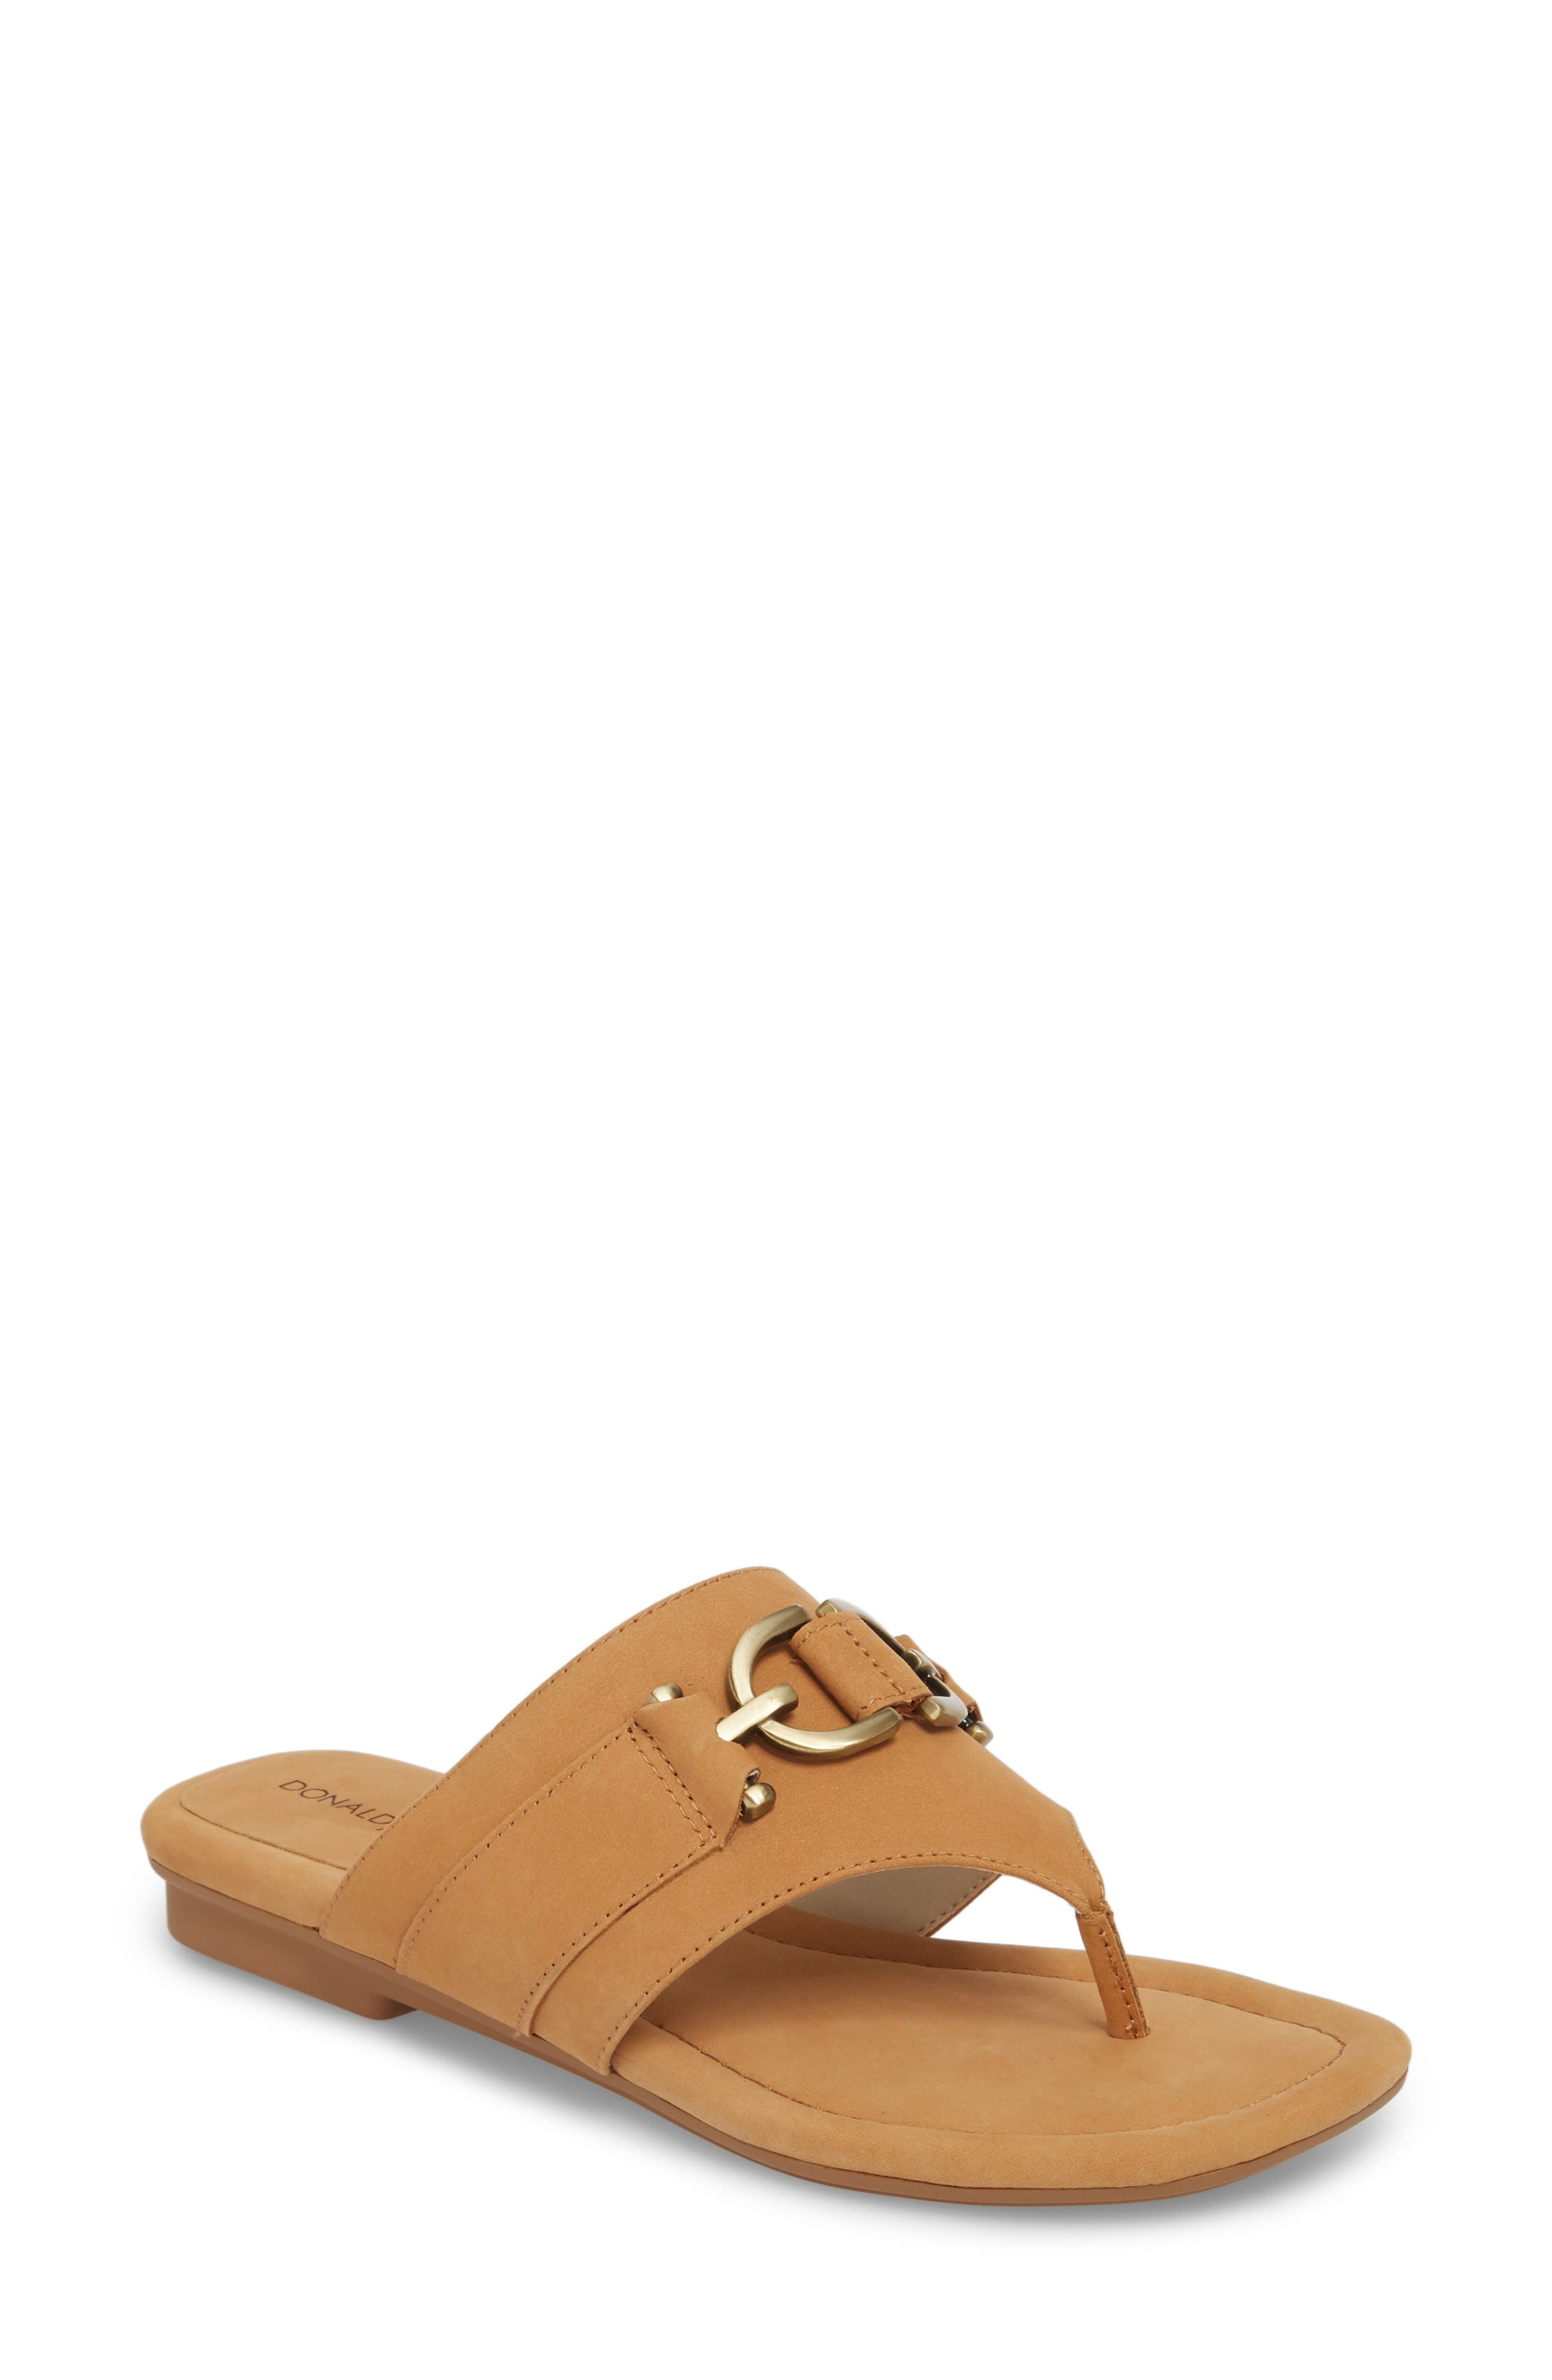 Kent Sandal,                         Main,                         color, Fawn Leather